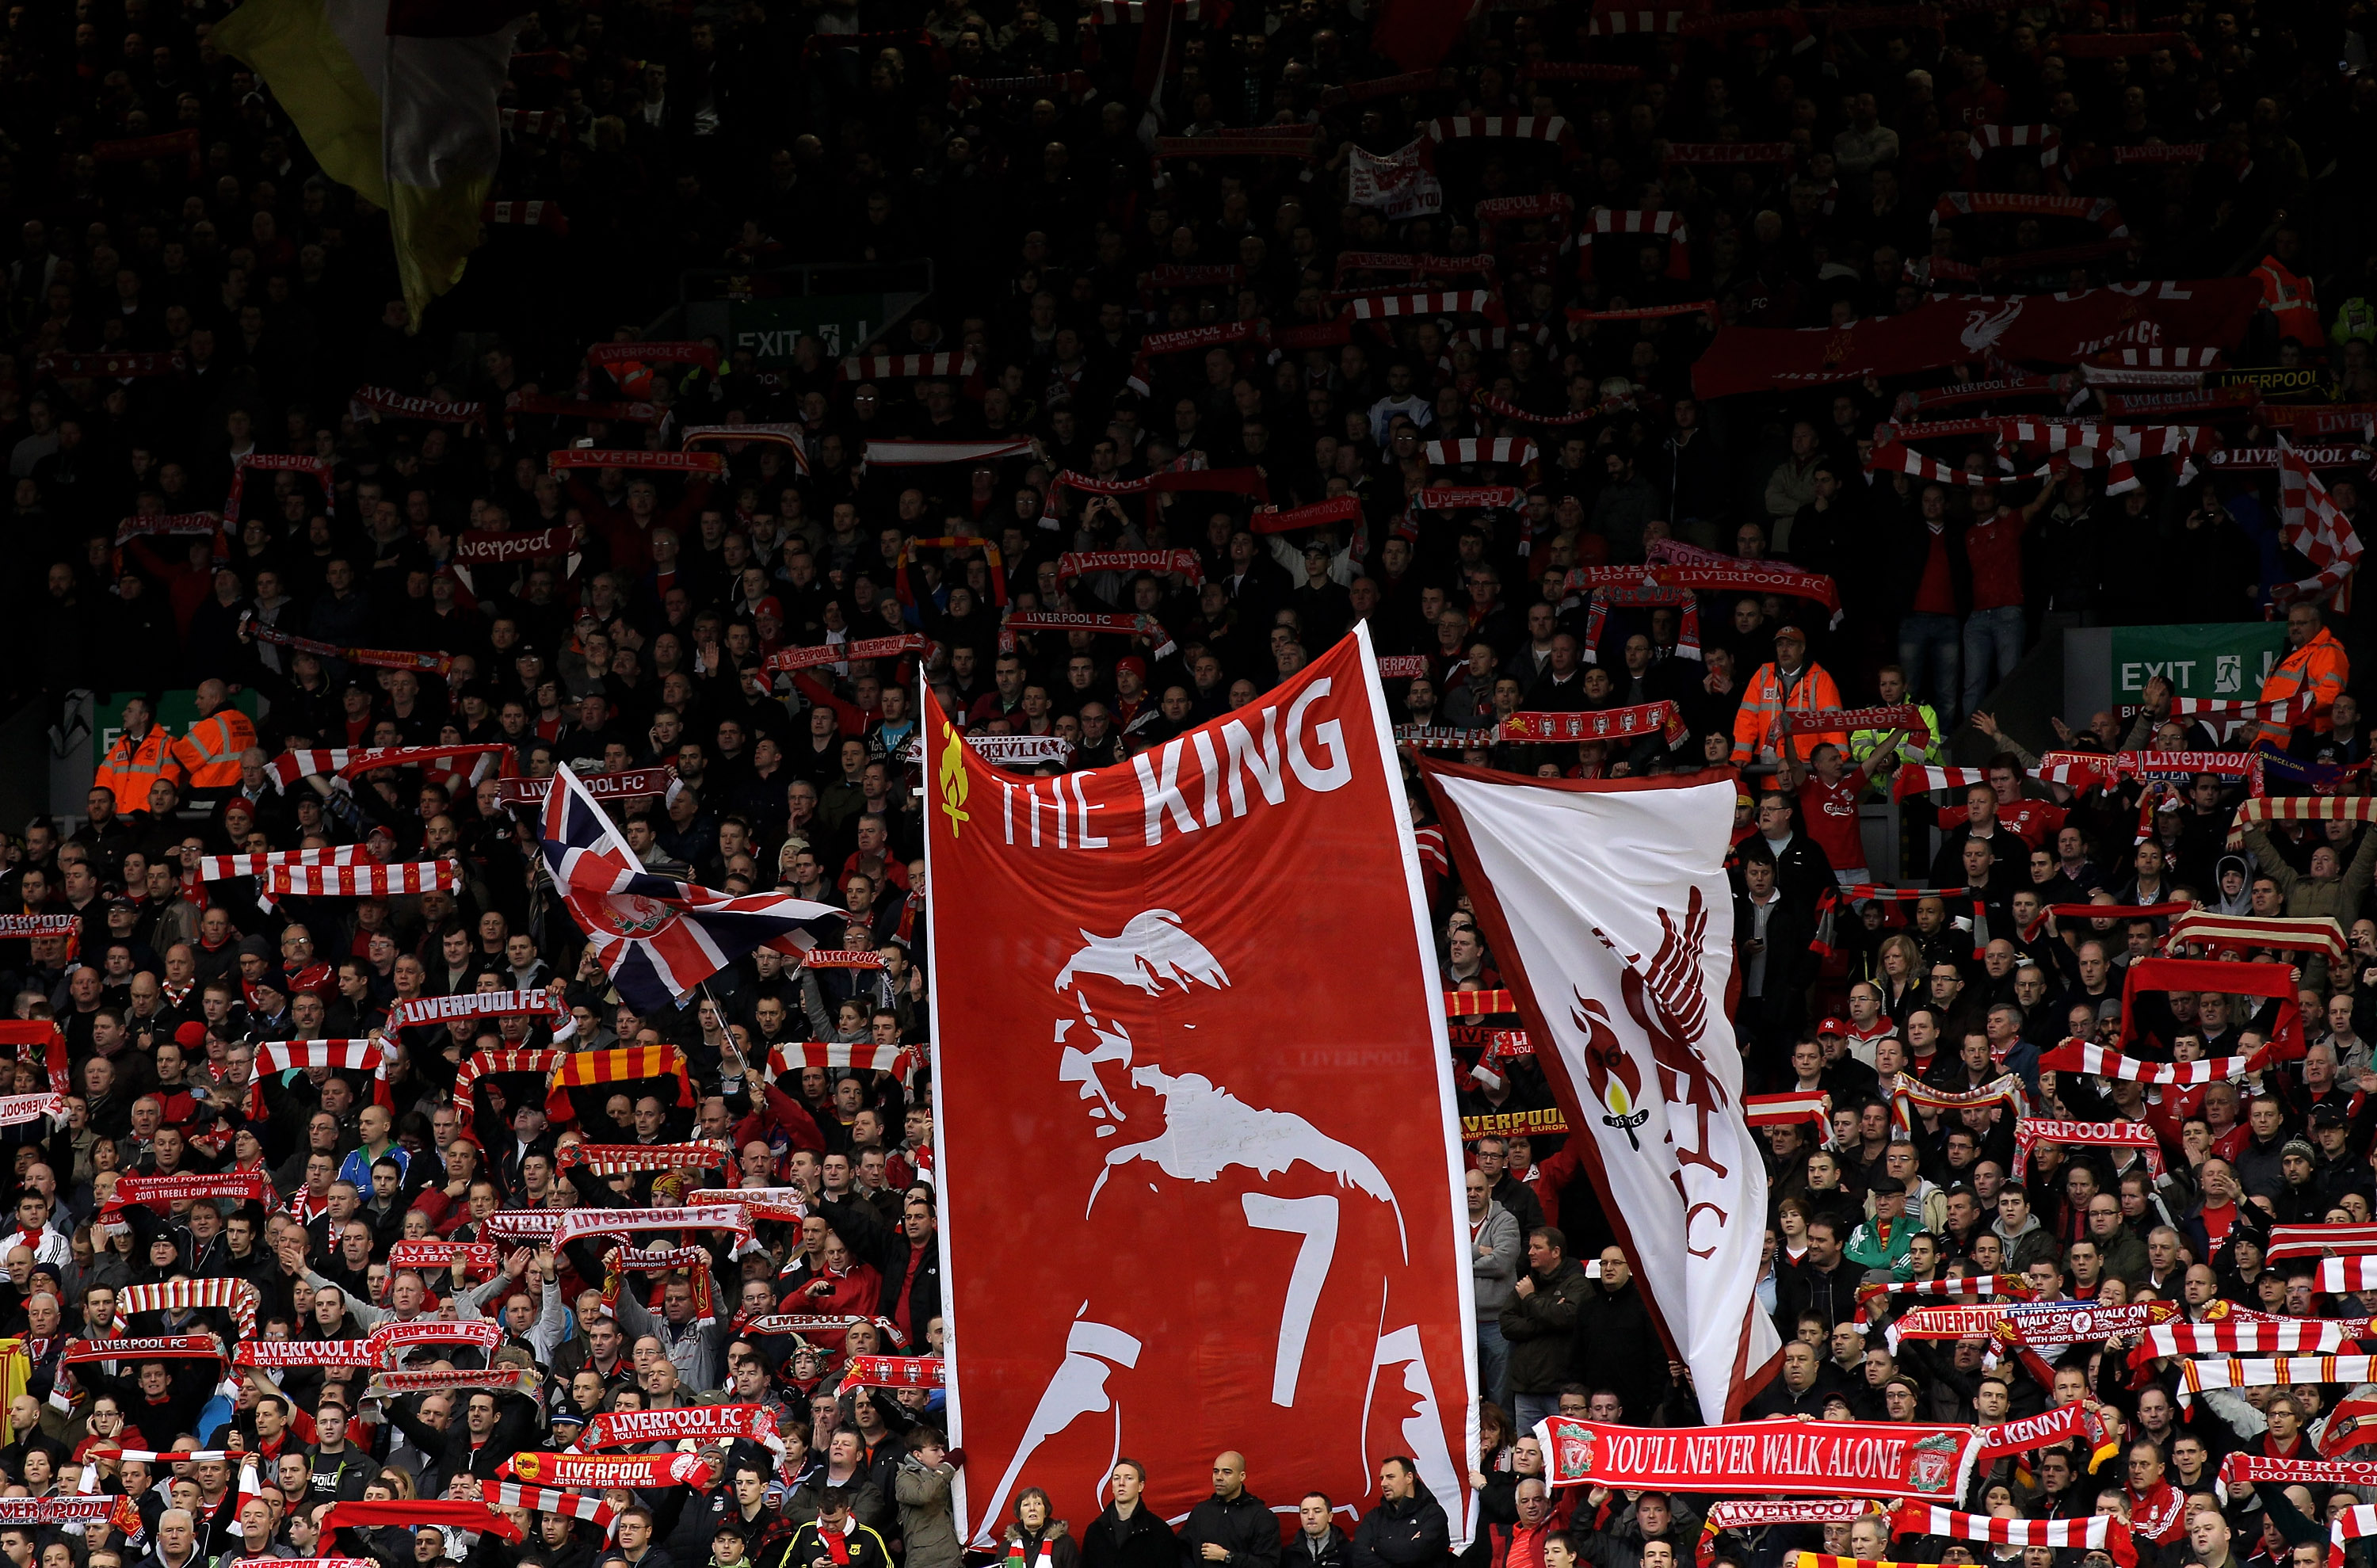 LIVERPOOL, ENGLAND - JANUARY 16:  The Kop display a banner honouring Liverpool Manager Kenny Dalglish prior to the Barclays Premier League match between Liverpool and Everton at Anfield on January 16, 2011 in Liverpool, England. (Photo by Alex Livesey /Ge